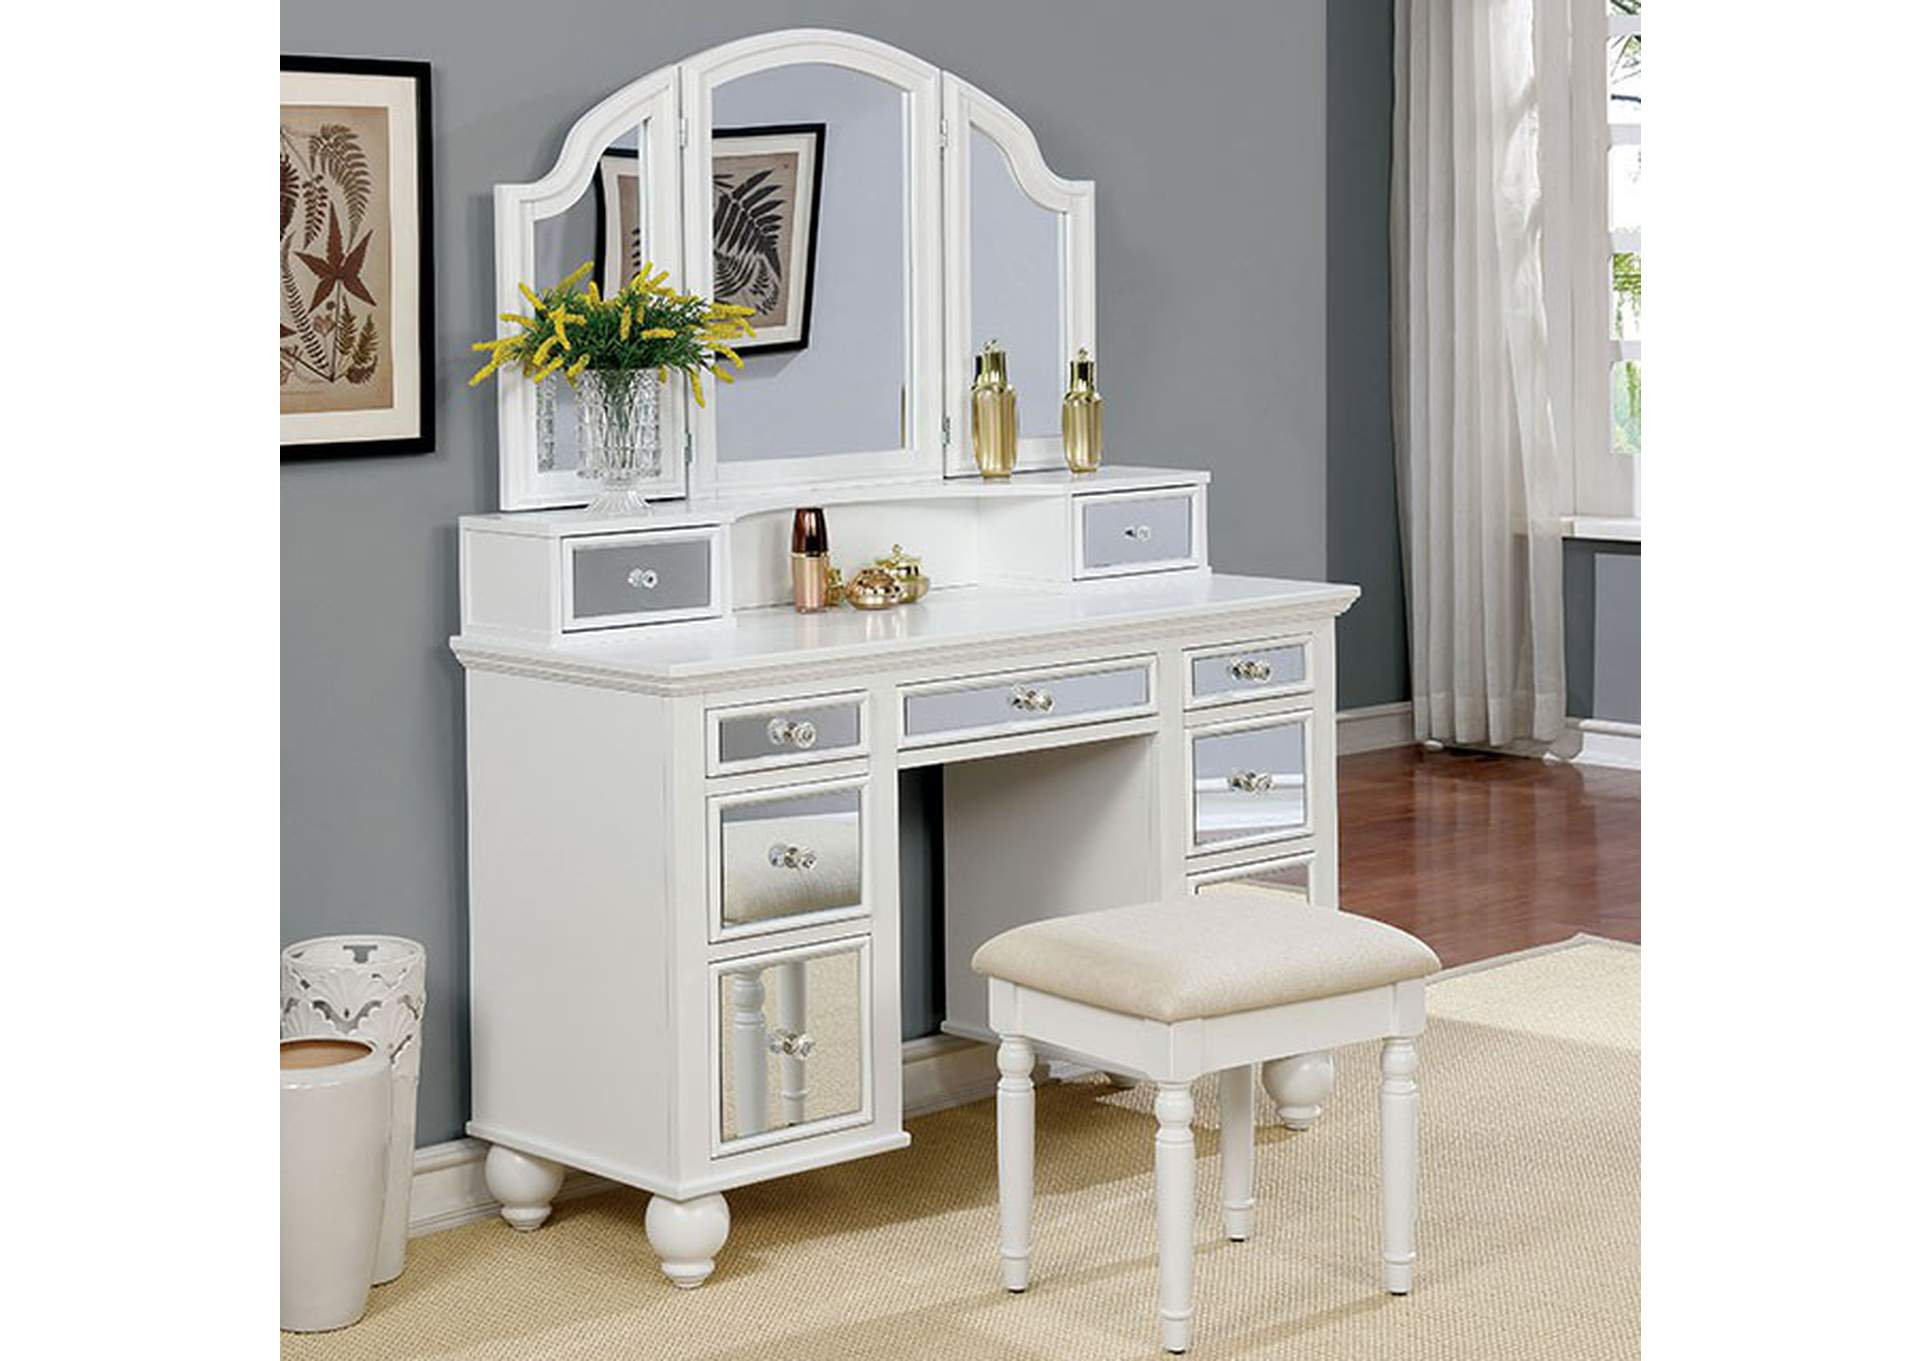 Furniture Ville Bronx Ny Tracy White Vanity W Stool